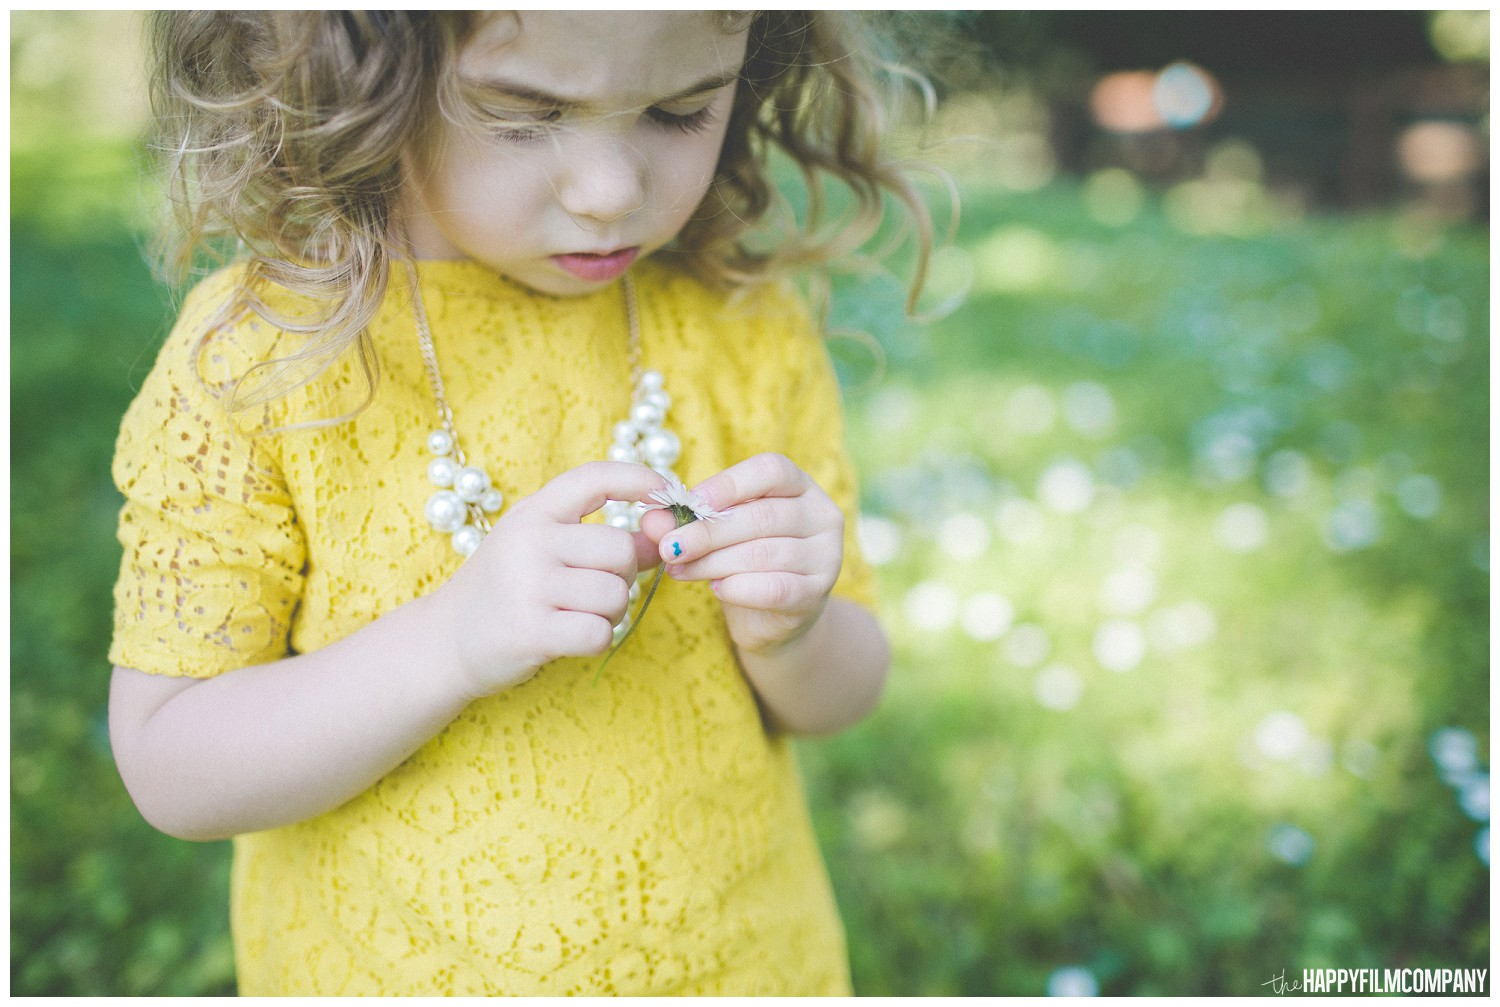 Little girl in yellow shirt, picking flowers - the Happy Film Company - Seattle Family Photography